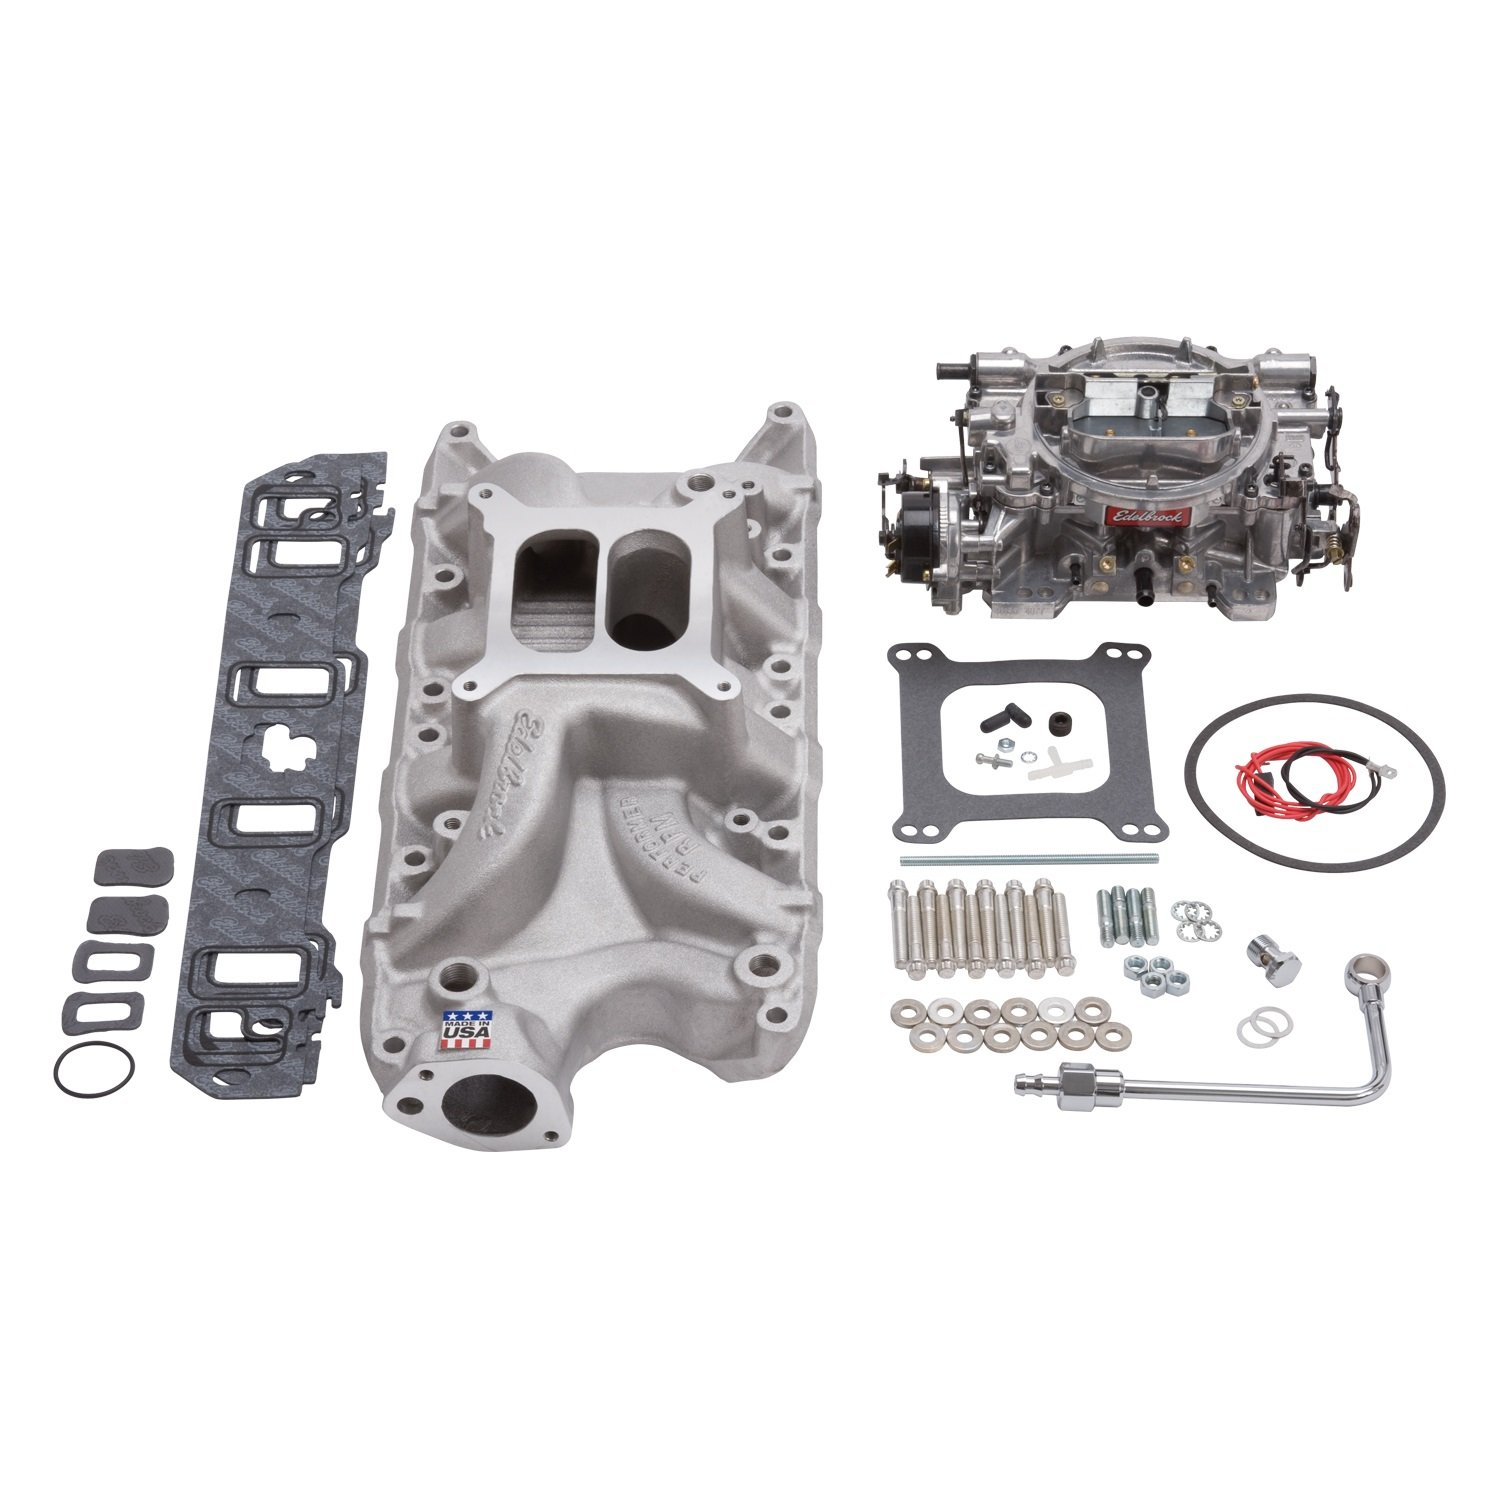 Edelbrock 2032 Single-Quad Manifold And Carb Kit Performer RPM Manifold w/800cfm Thunder Series Carb Carb/Fuel Line/Intake Bolts/Gaskets Natural Finish For Small Block Ford Single-Quad Manifold And Carb Kit by Edelbrock (Image #2)